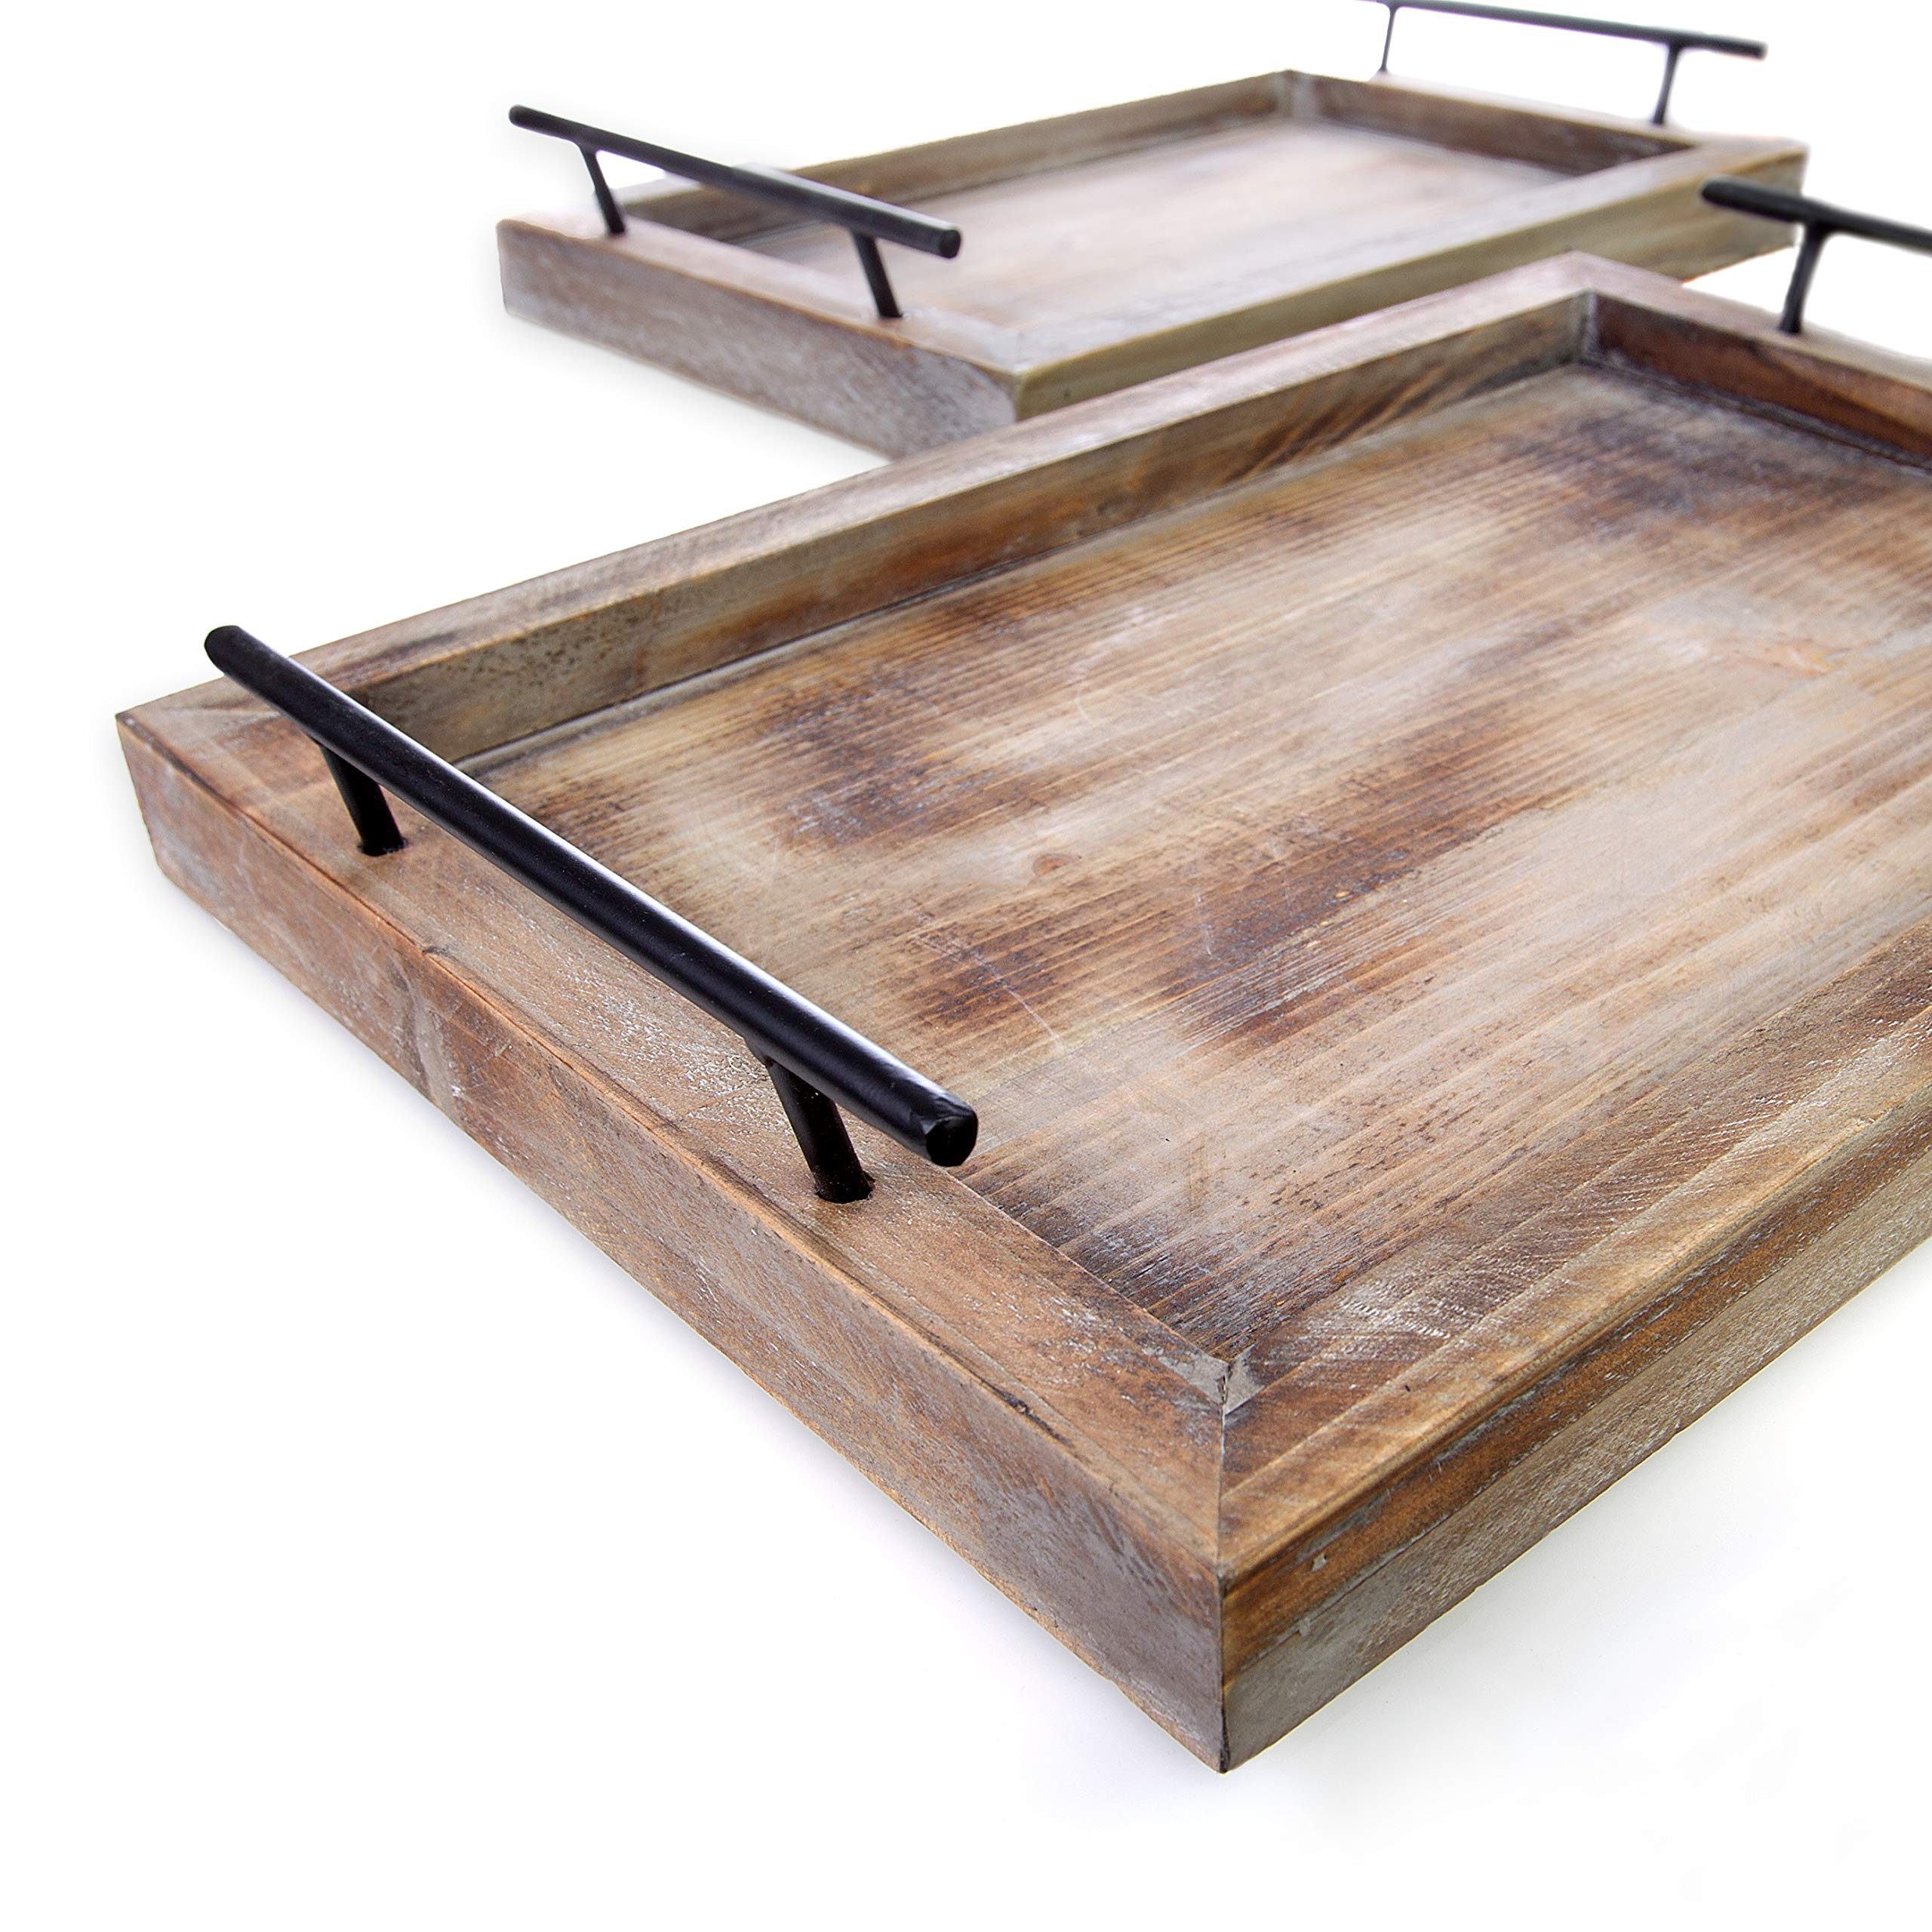 Bison Home Goods Wooden Serving Trays with Handles (2 Pc. Set) Rustic, Farmhouse Wood Butler Platters   Serve Breakfast, Appetizer, Coffee, Bar, and Food   Party or Display Use